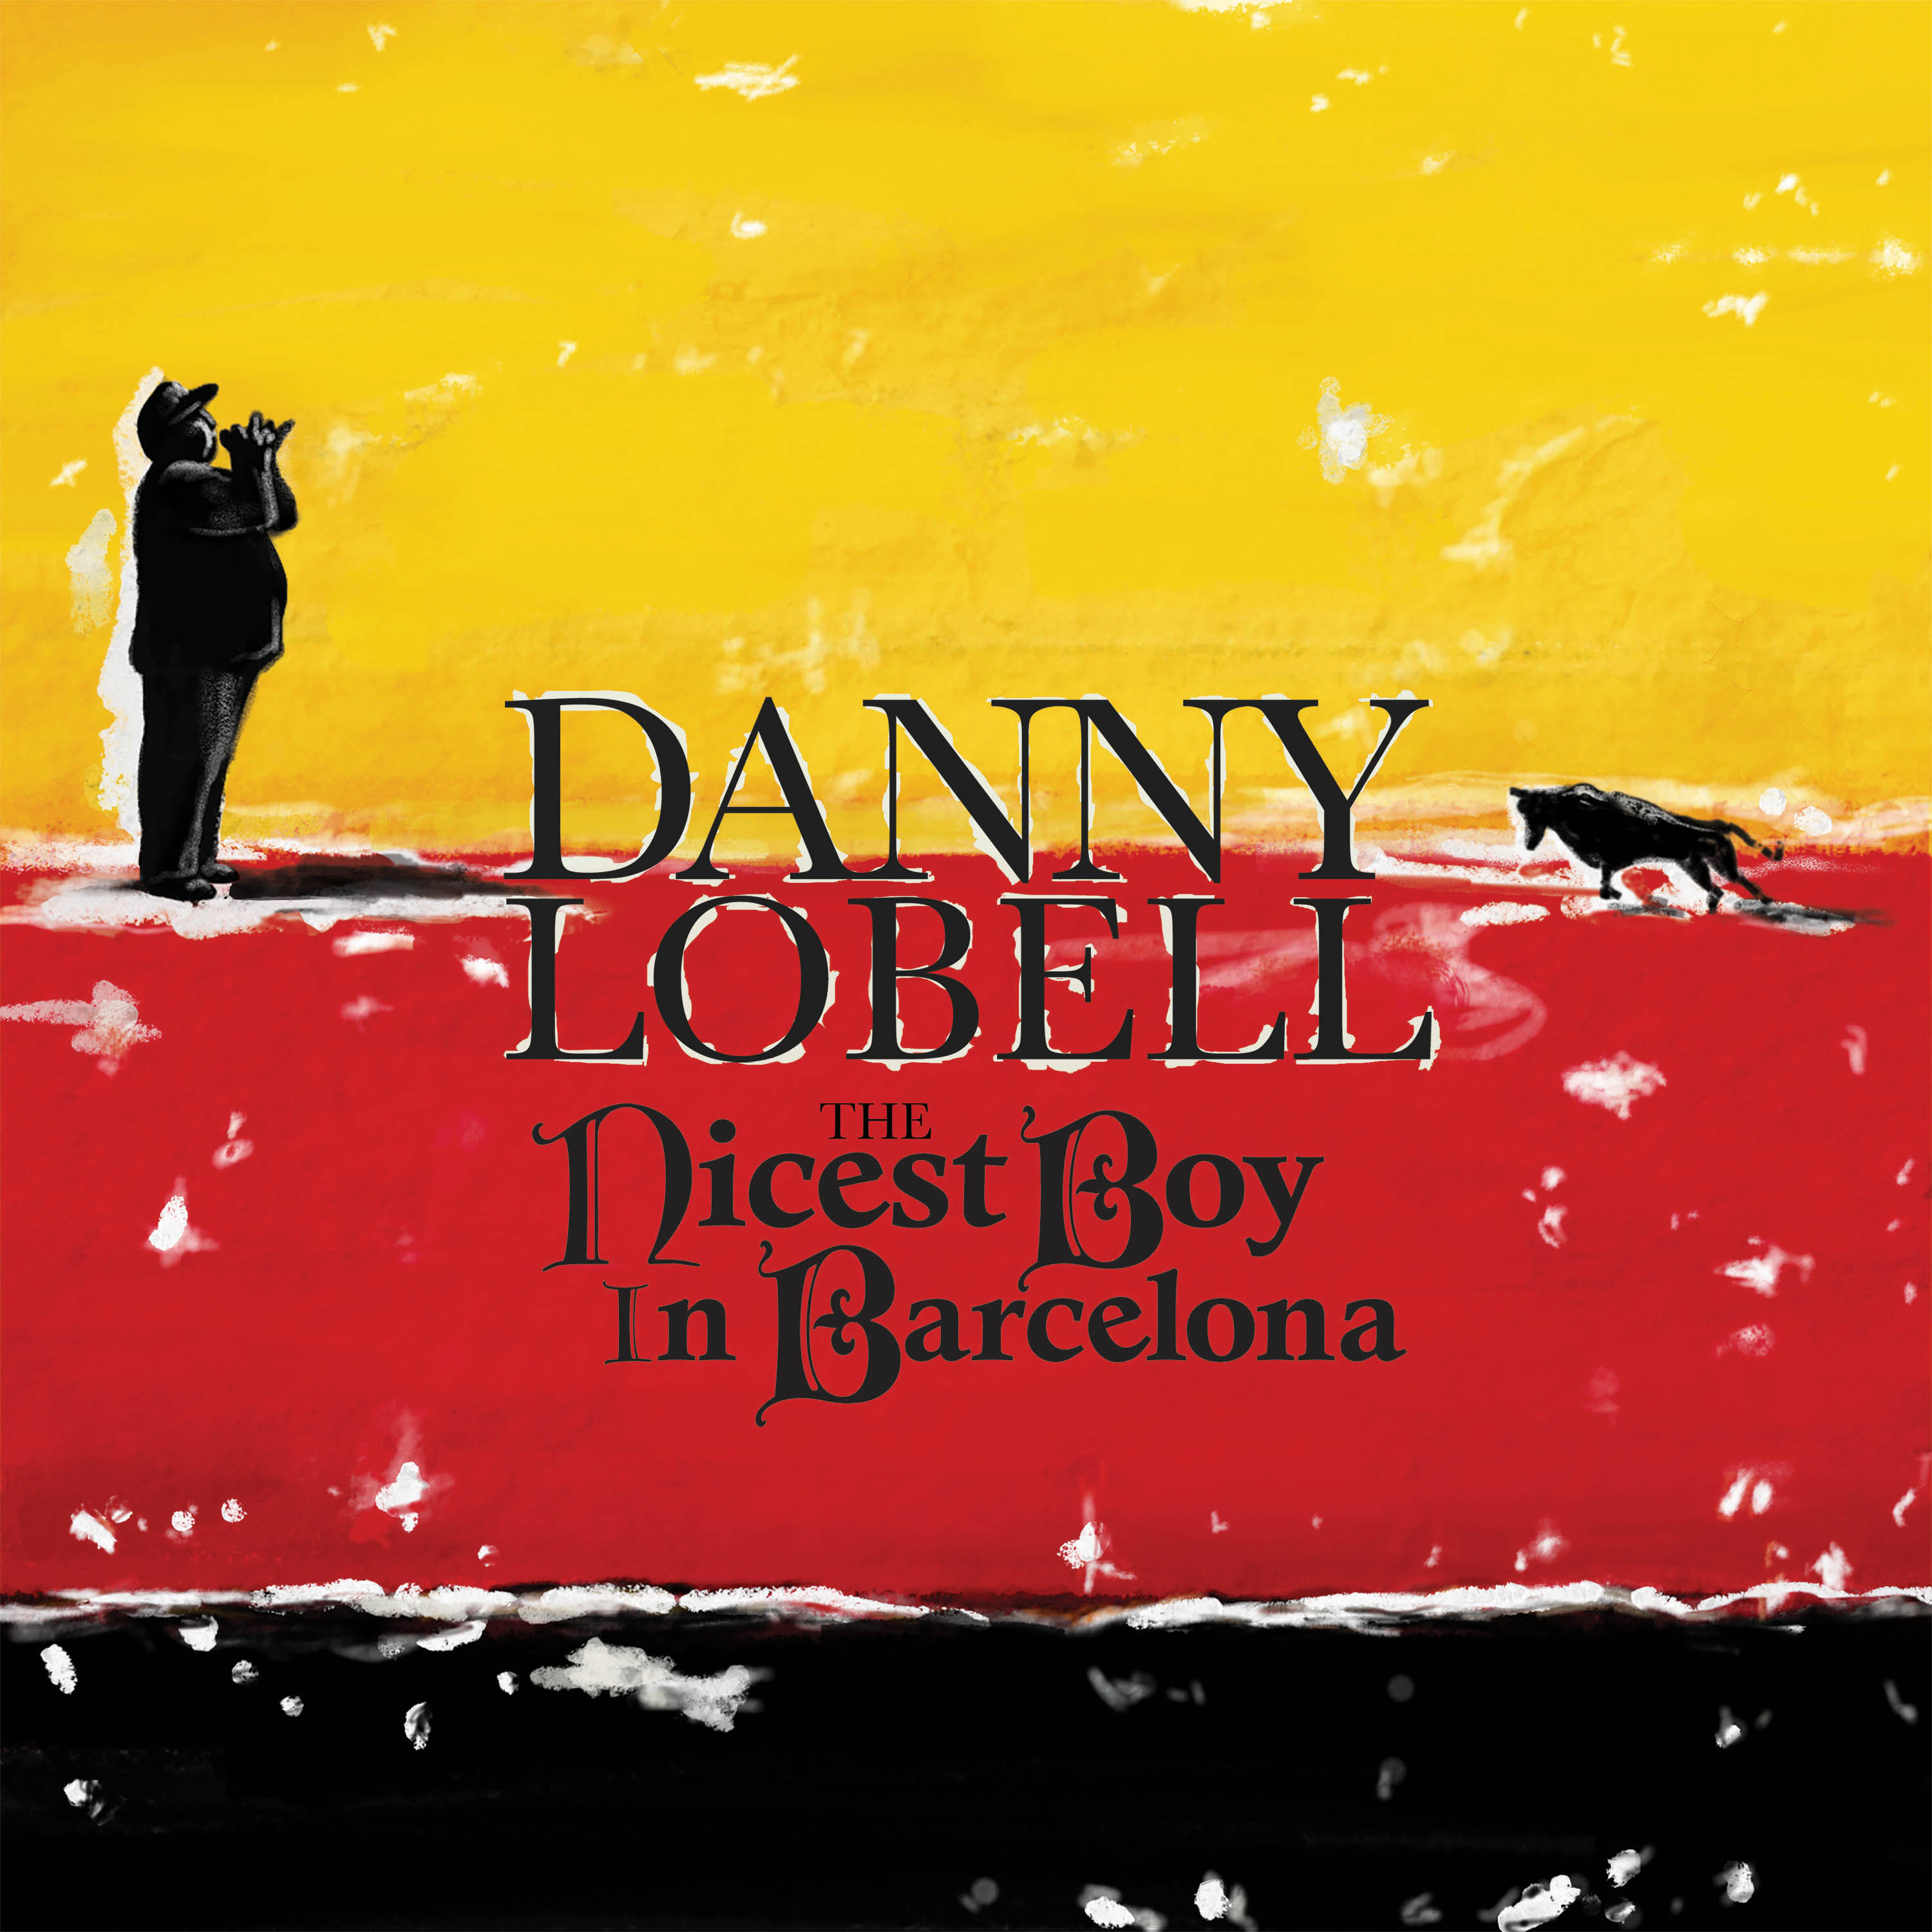 COMEDY NEWS: Danny Lobell's Latest The Nicest Boy in Barcelona Out Today from Stand Up! Records